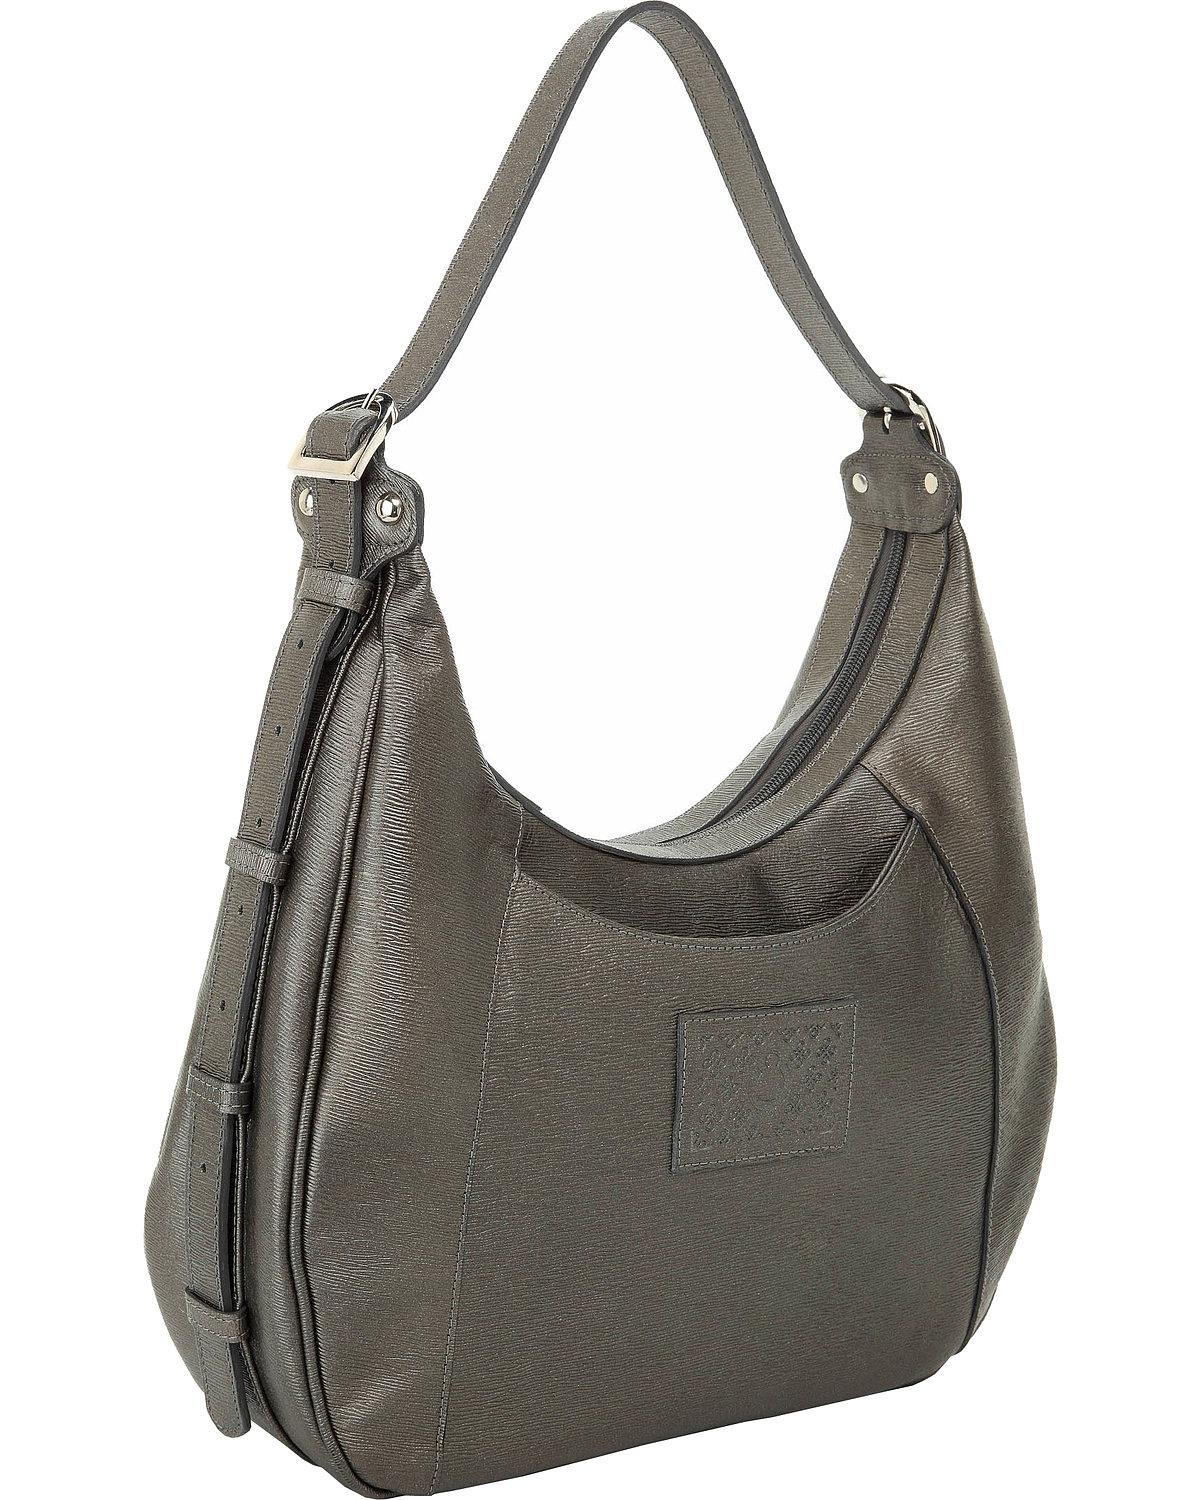 Designer Concealed Carry Women's Grey Santa Fe Hobo Bag Grey One Size